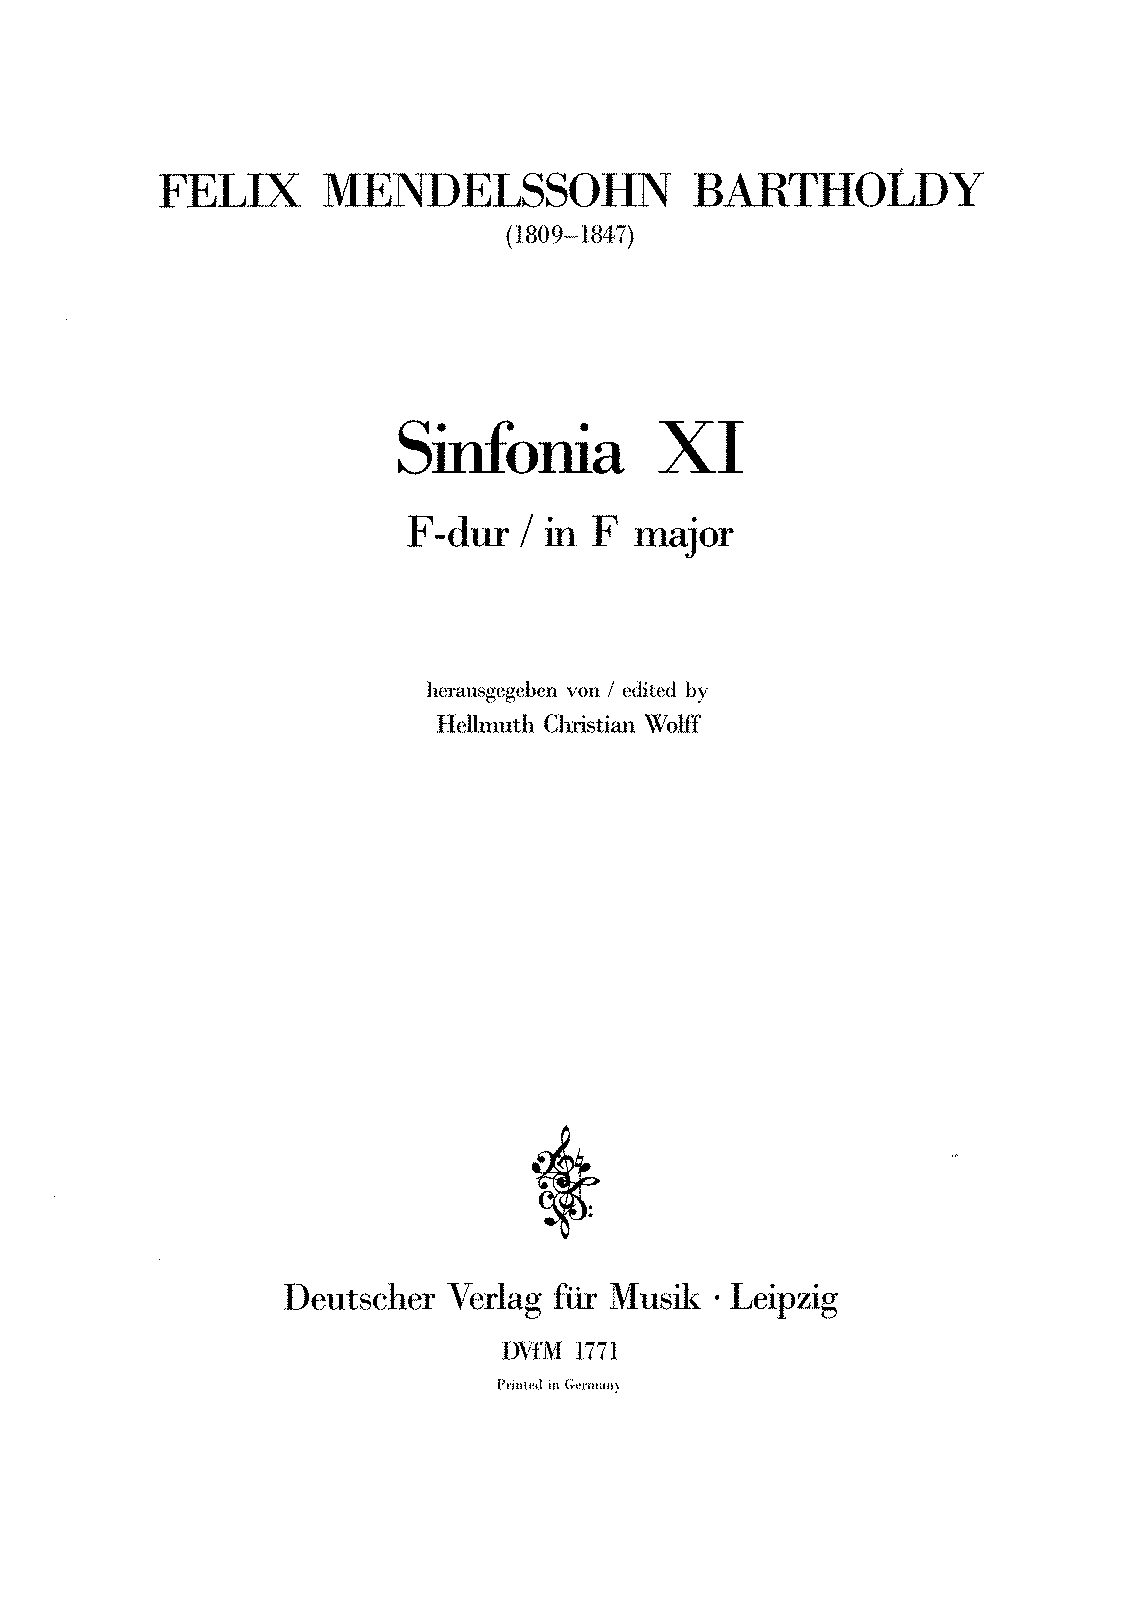 PMLP208057-Mendelssohn, Felix - Sinfonia for String no. 11 in F major MWV N 11.pdf